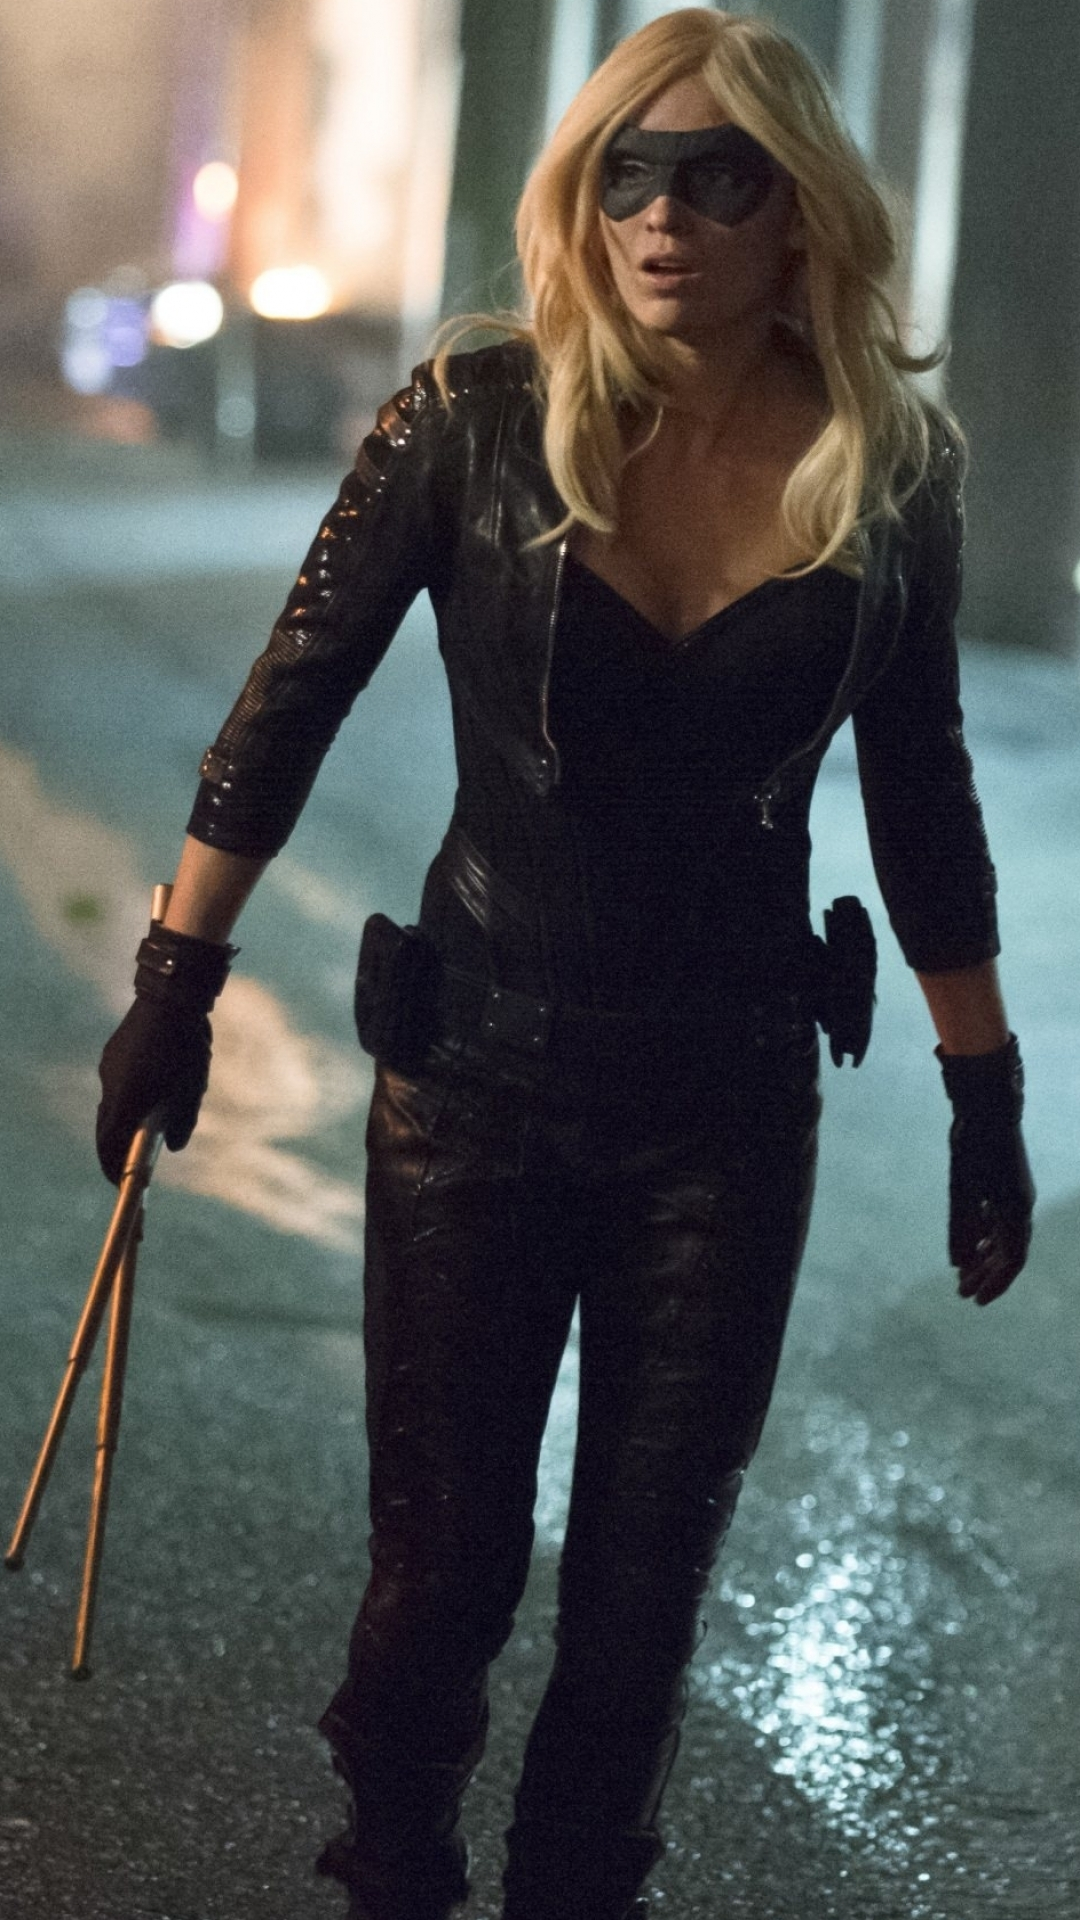 Tv Show Arrow 1080x1920 Wallpaper Id 192111 Mobile Abyss